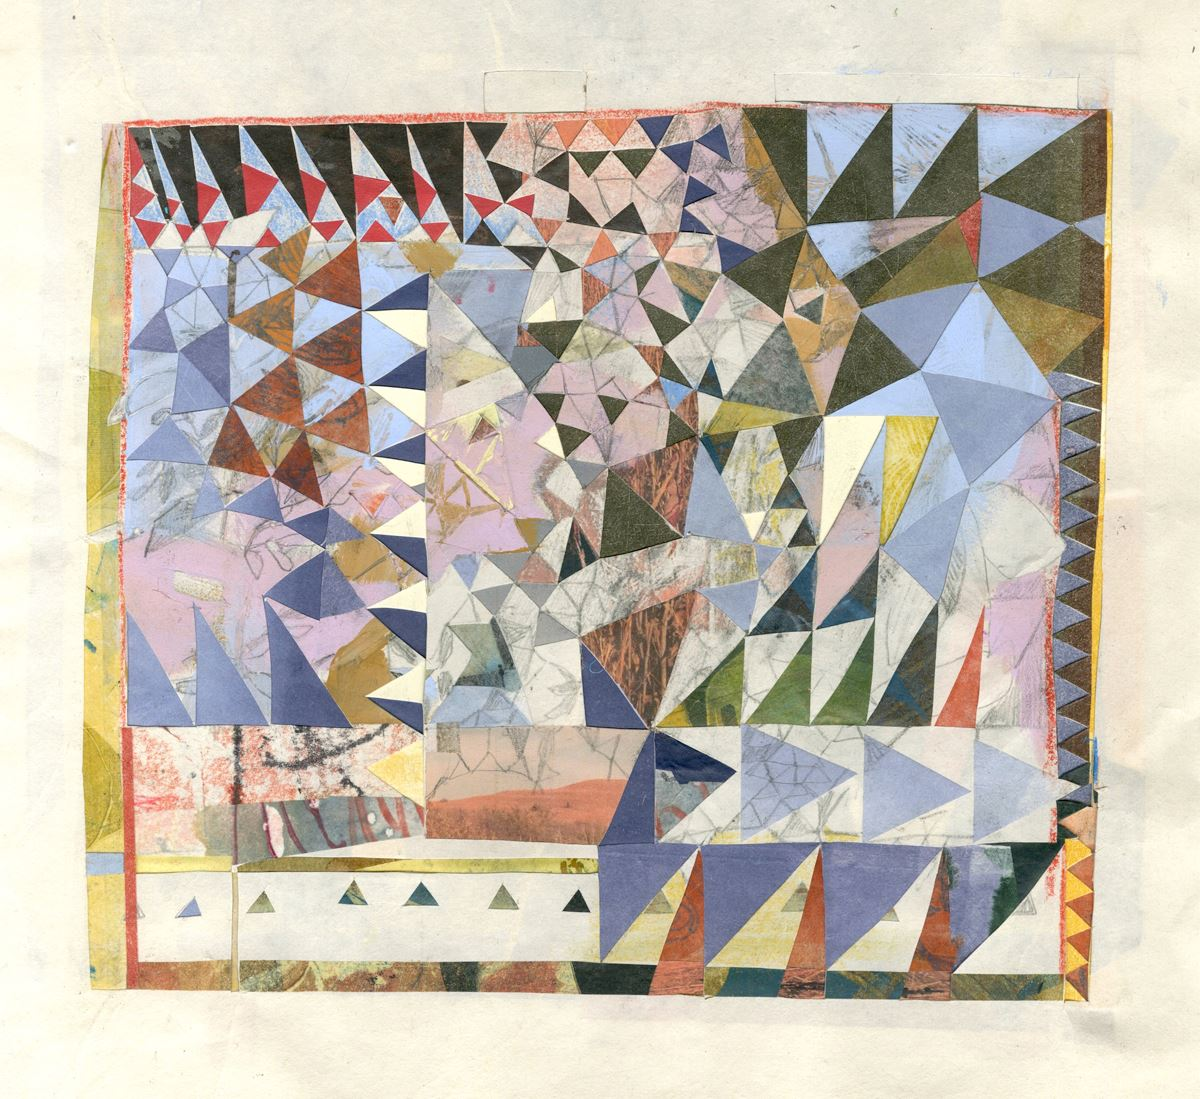 CrazyQuilt by Mary Gordon